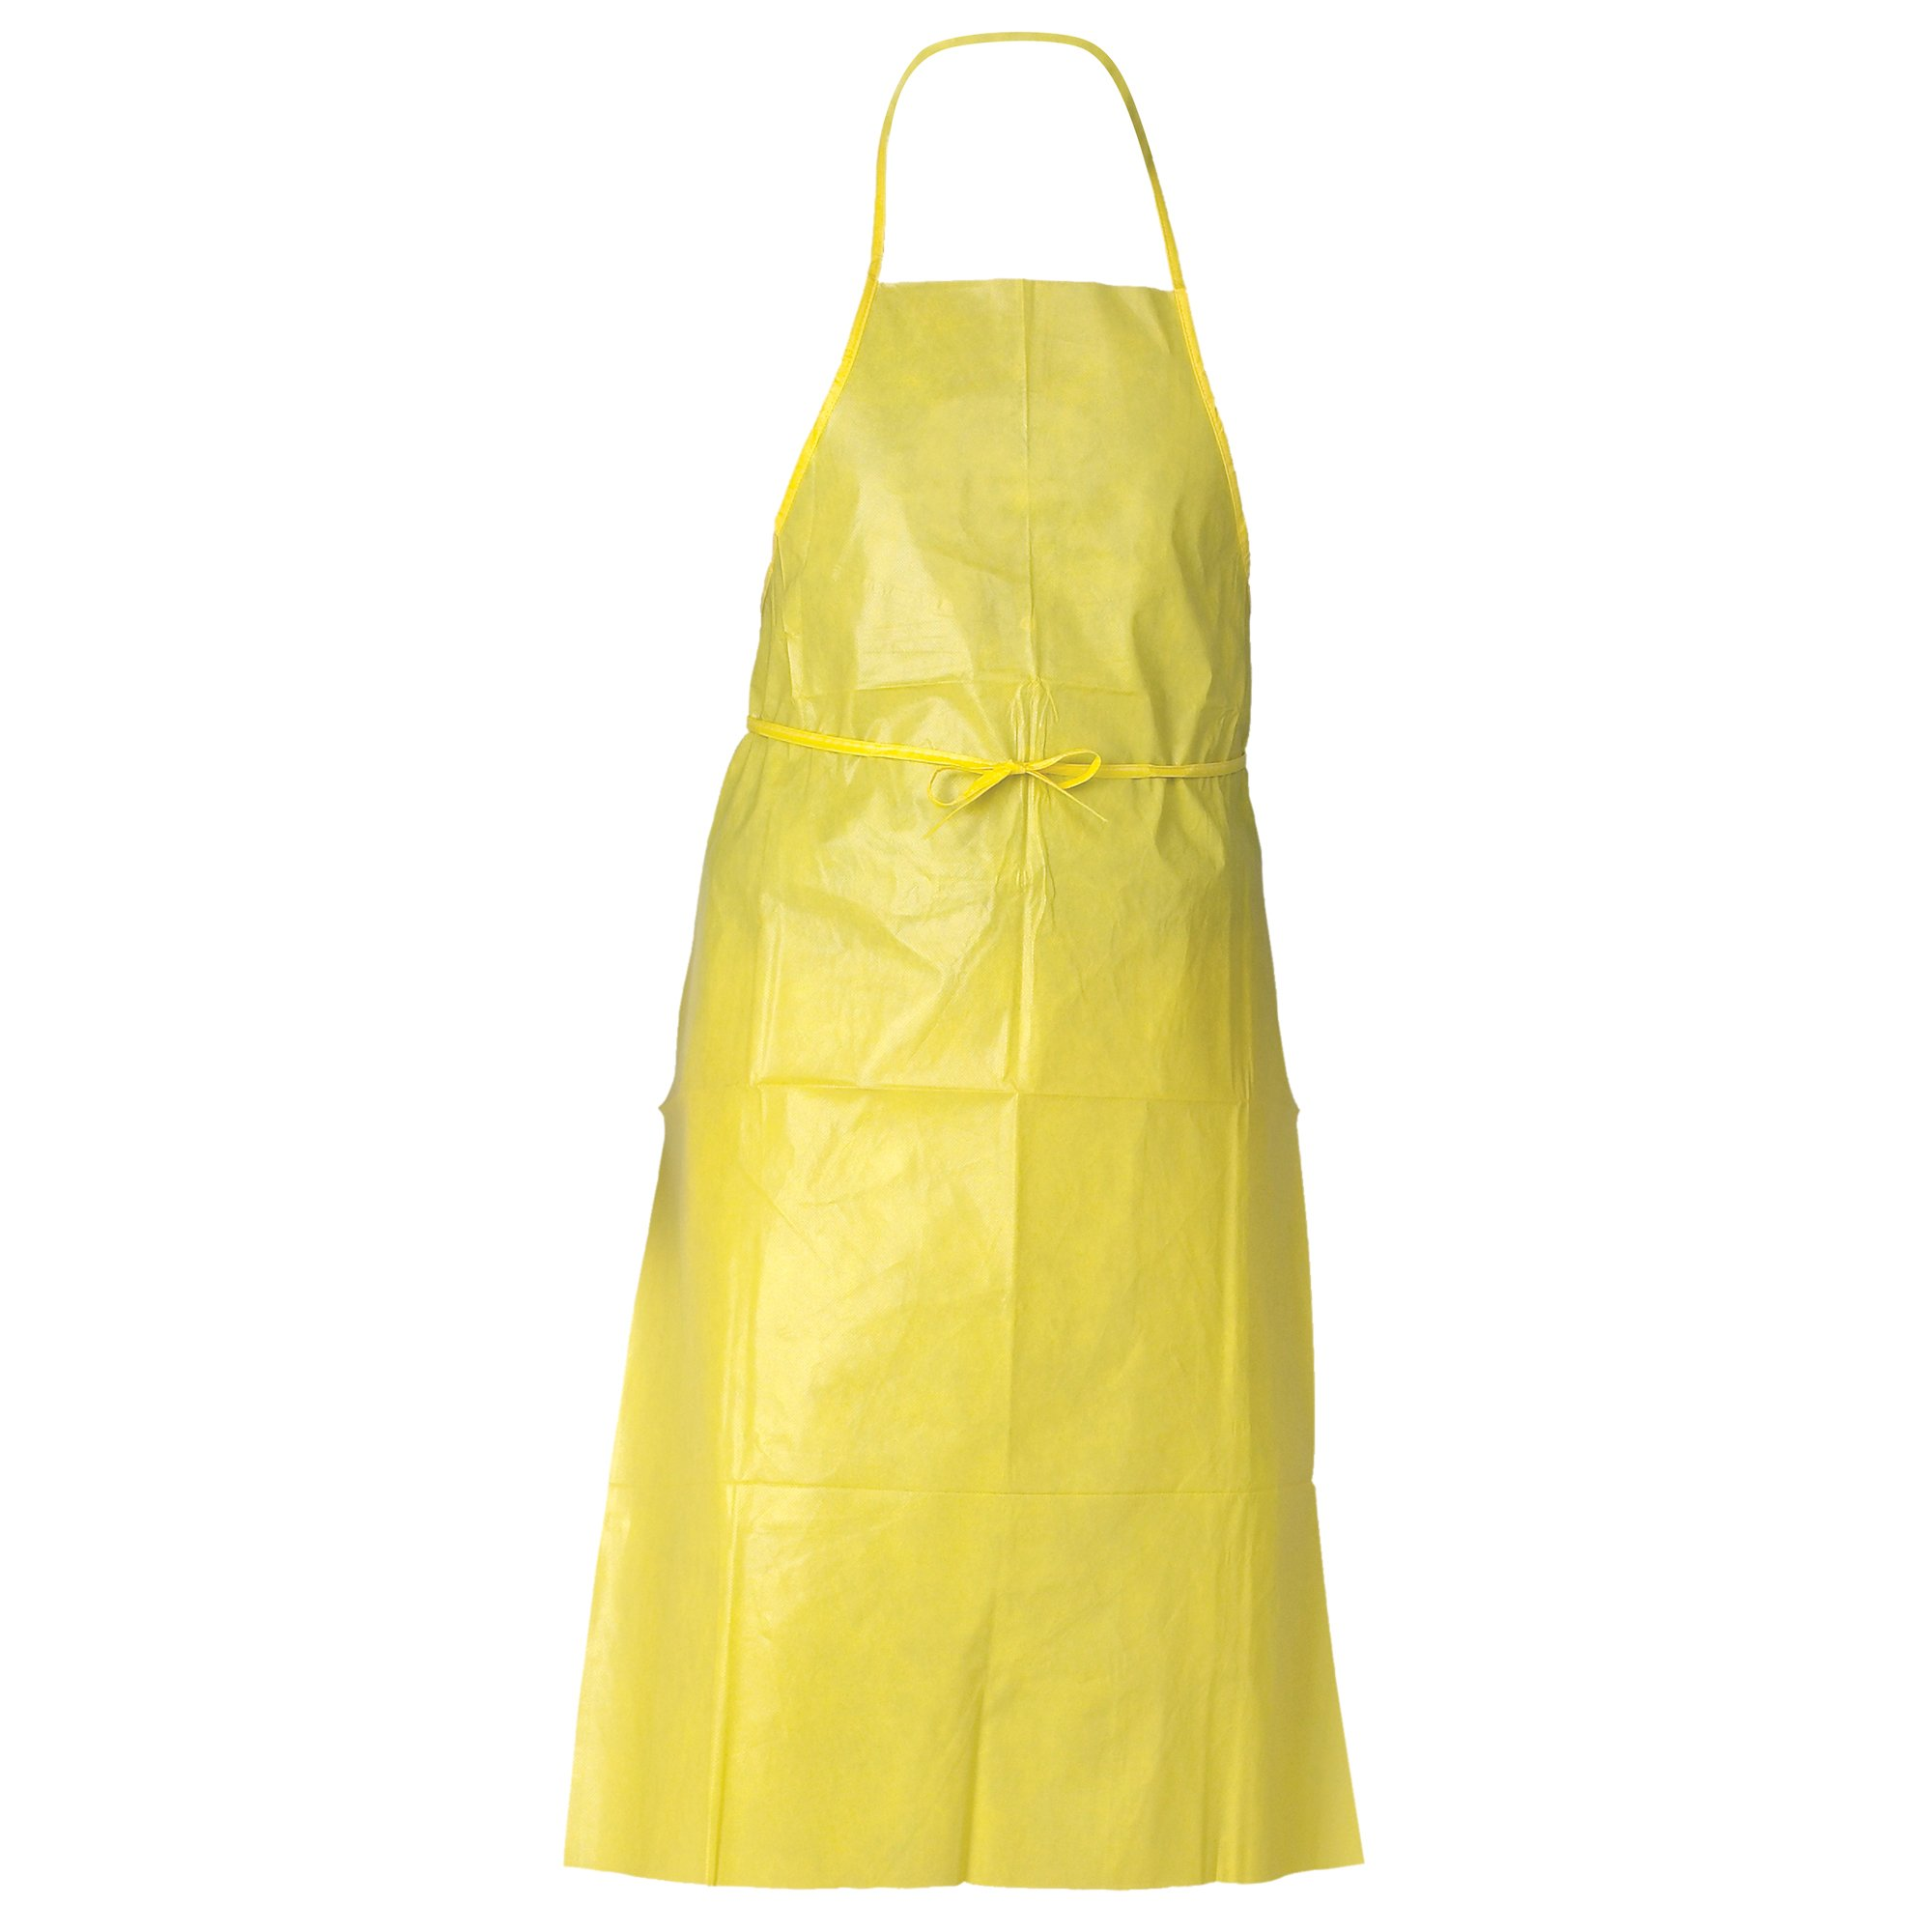 Kleenguard A70 Chemical Spray Protection Aprons (97790), Bound Seams, Neck & Ties, One Size, Yellow, 100 / Case